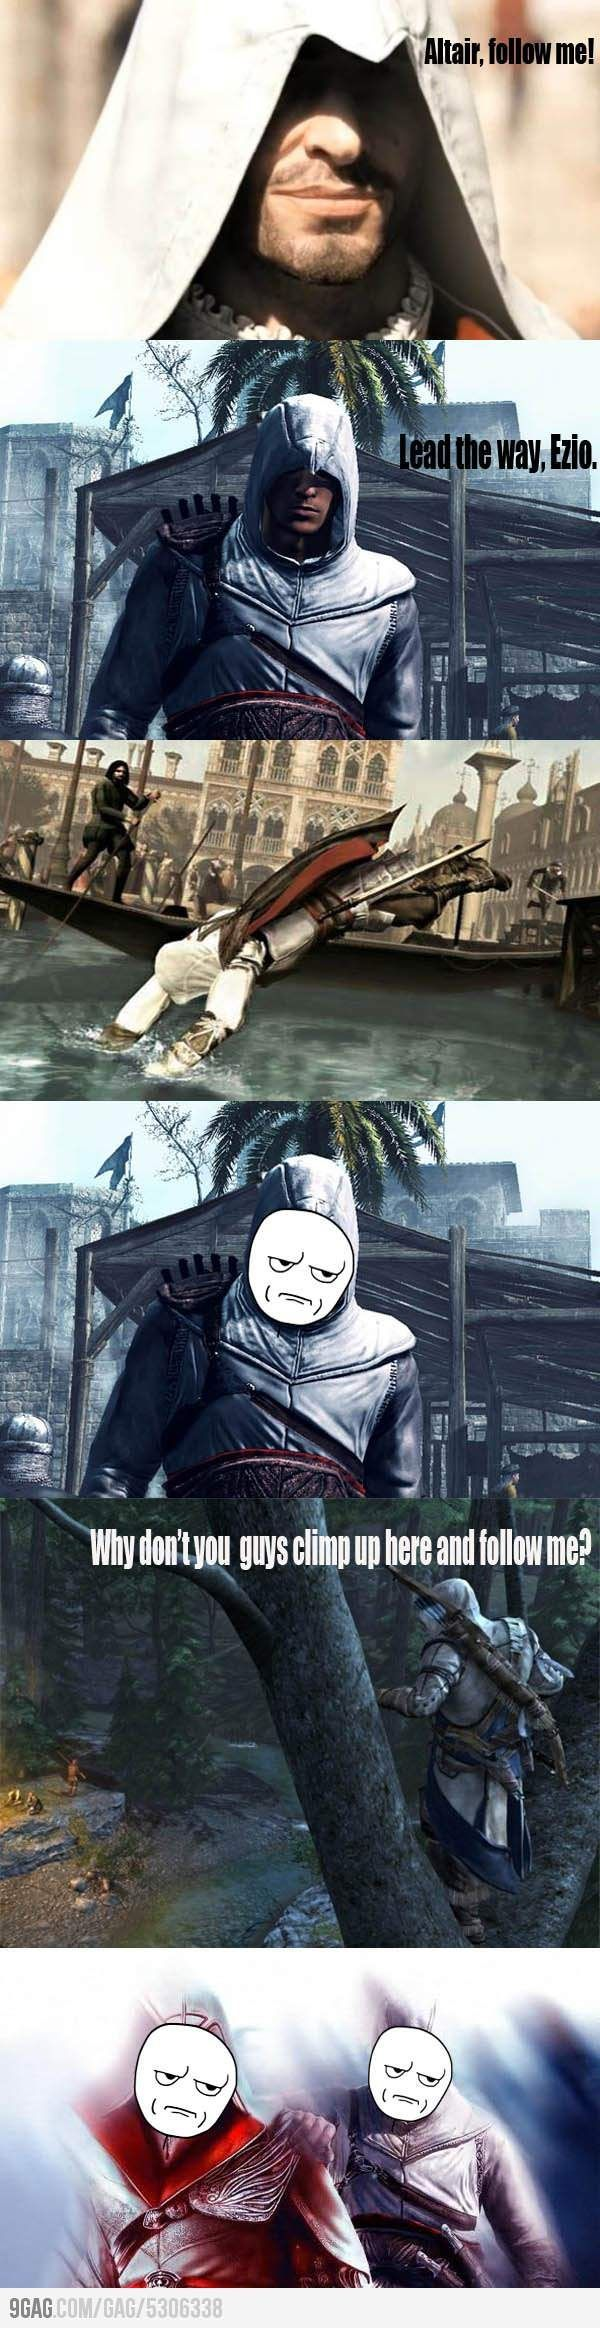 When Altair, THE MASTER ASSASSIN, couldn't swim, I about cried. It was so annoying that he couldn't swim. It was like the moment he hit the water BAM desyncronization!